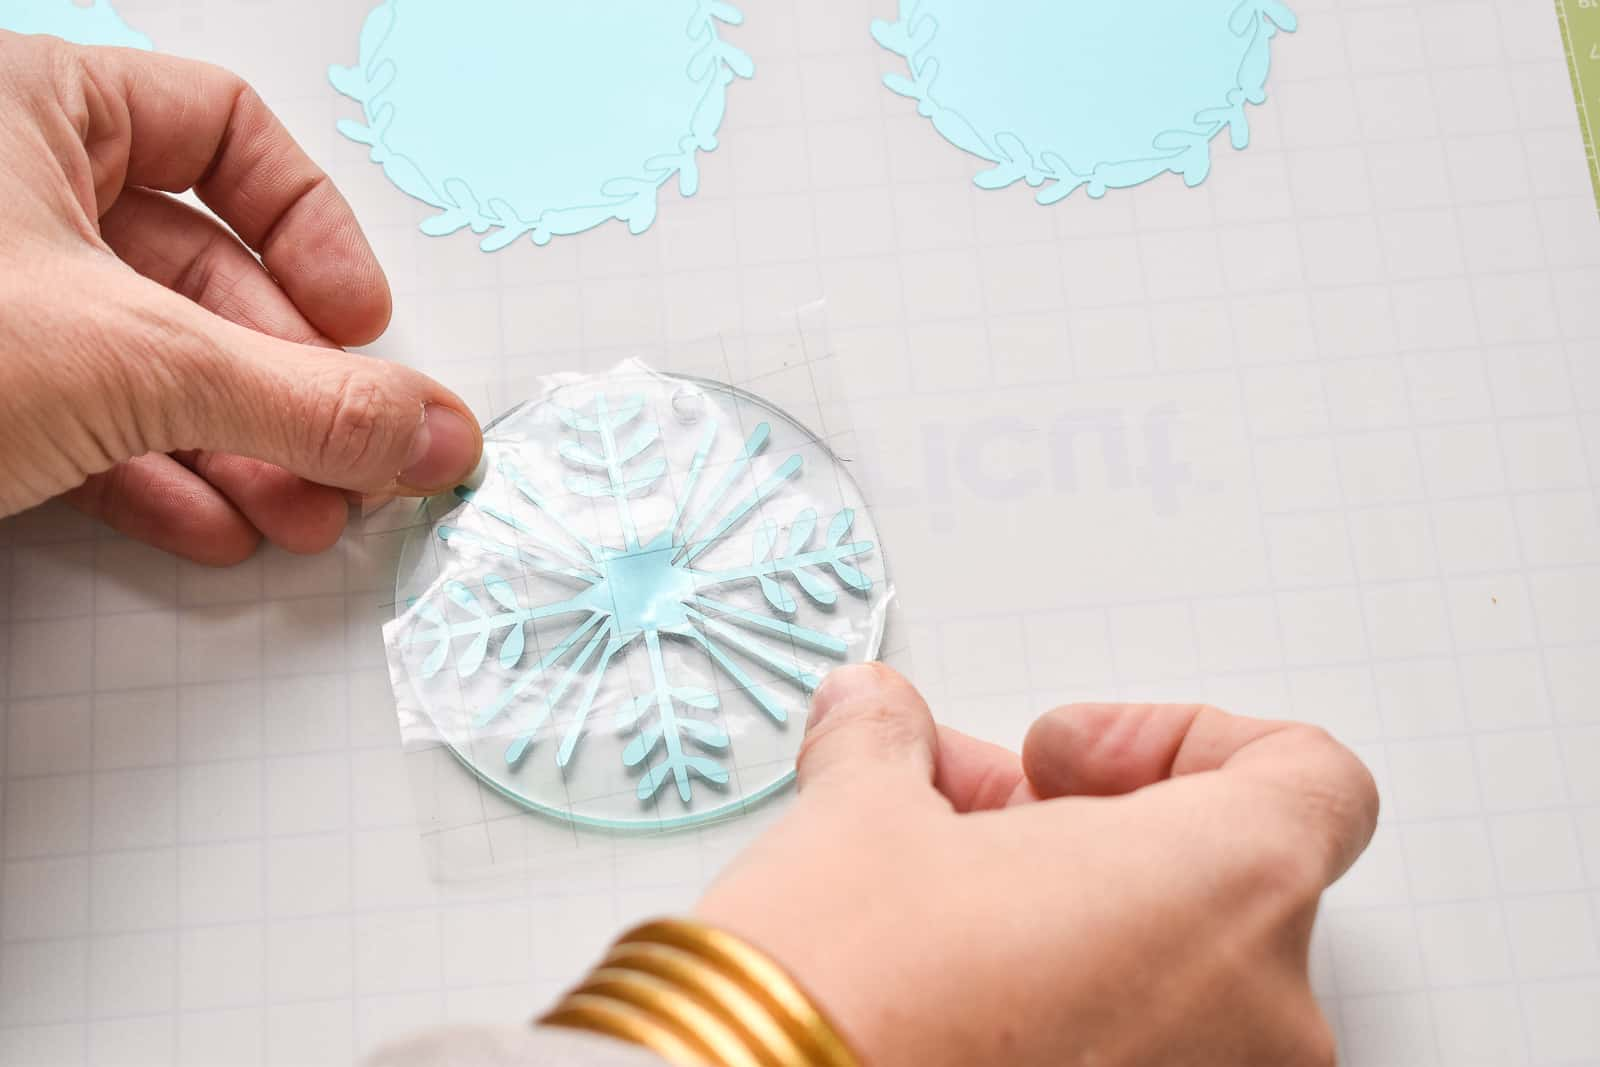 transfer snowflake to acrylic circle